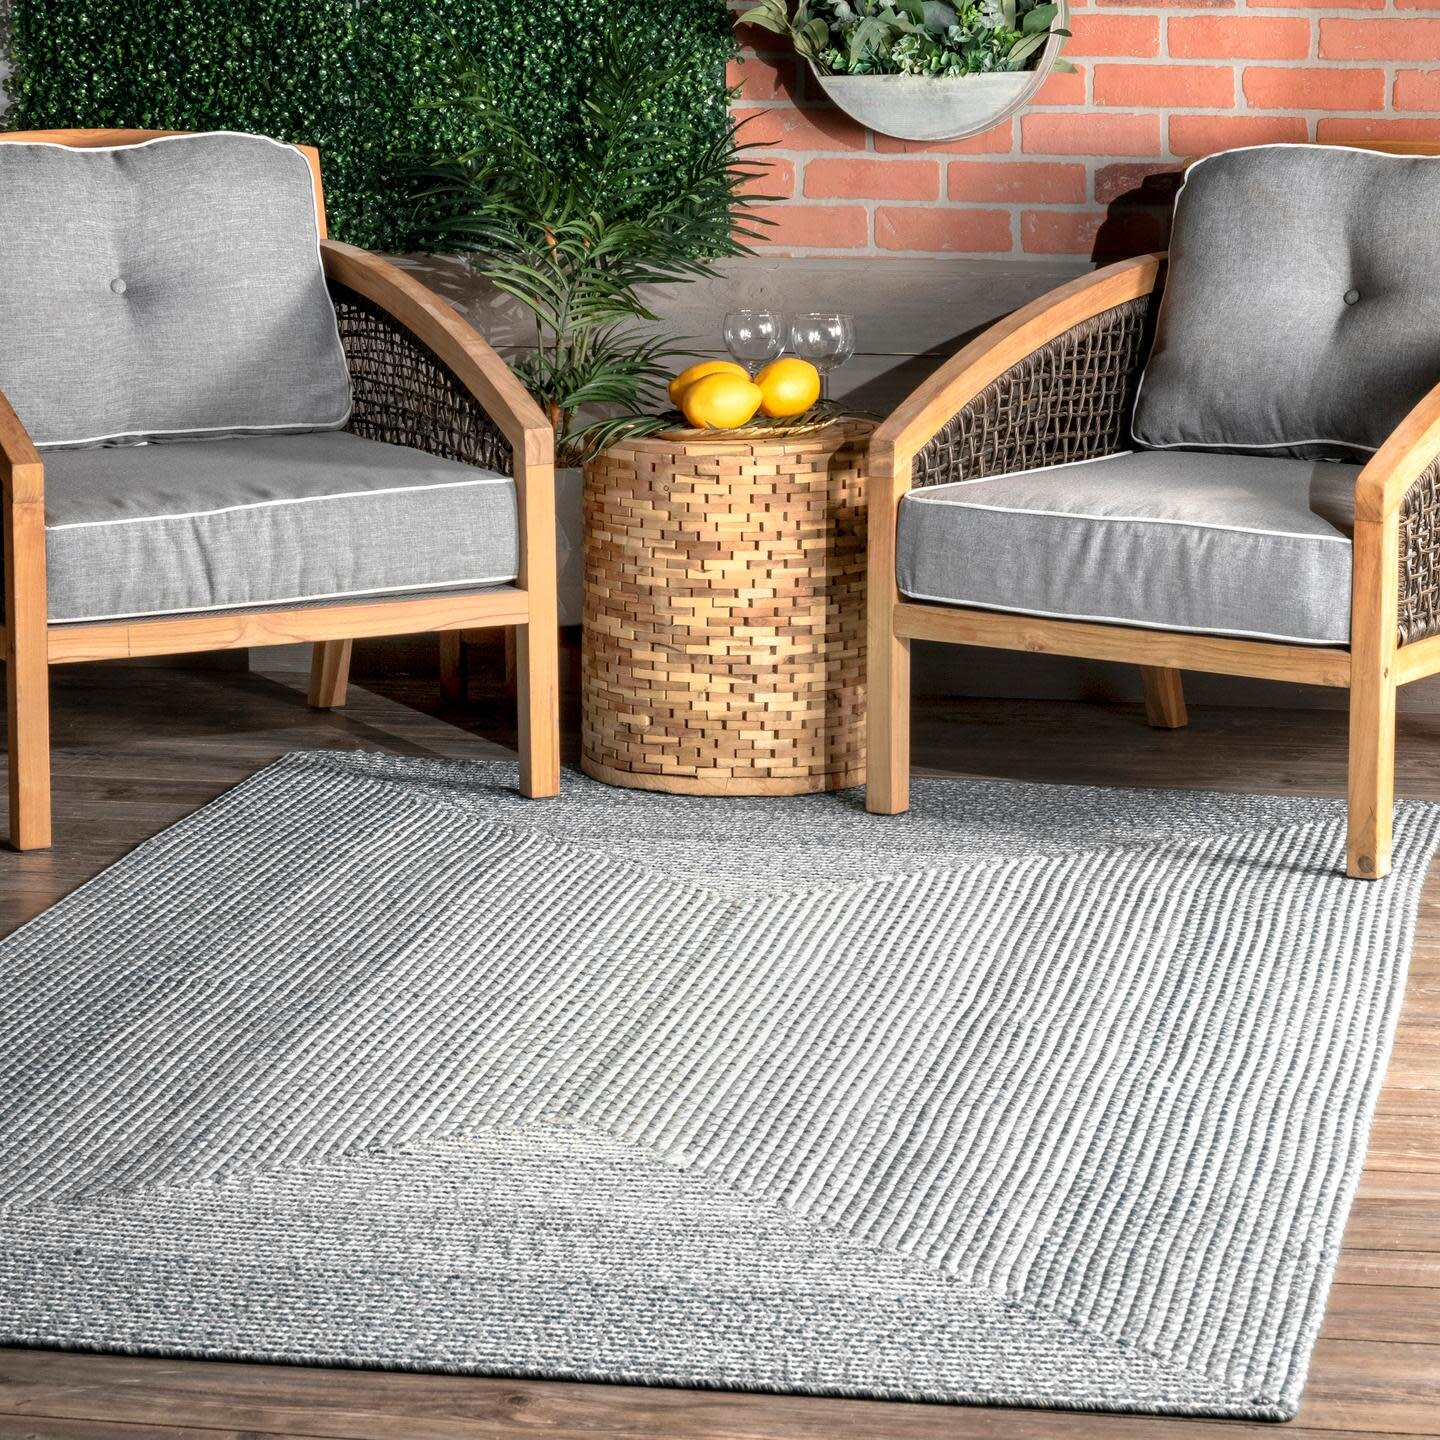 Gray Silver Round Outdoor Rugs You Ll Love In 2021 Wayfair